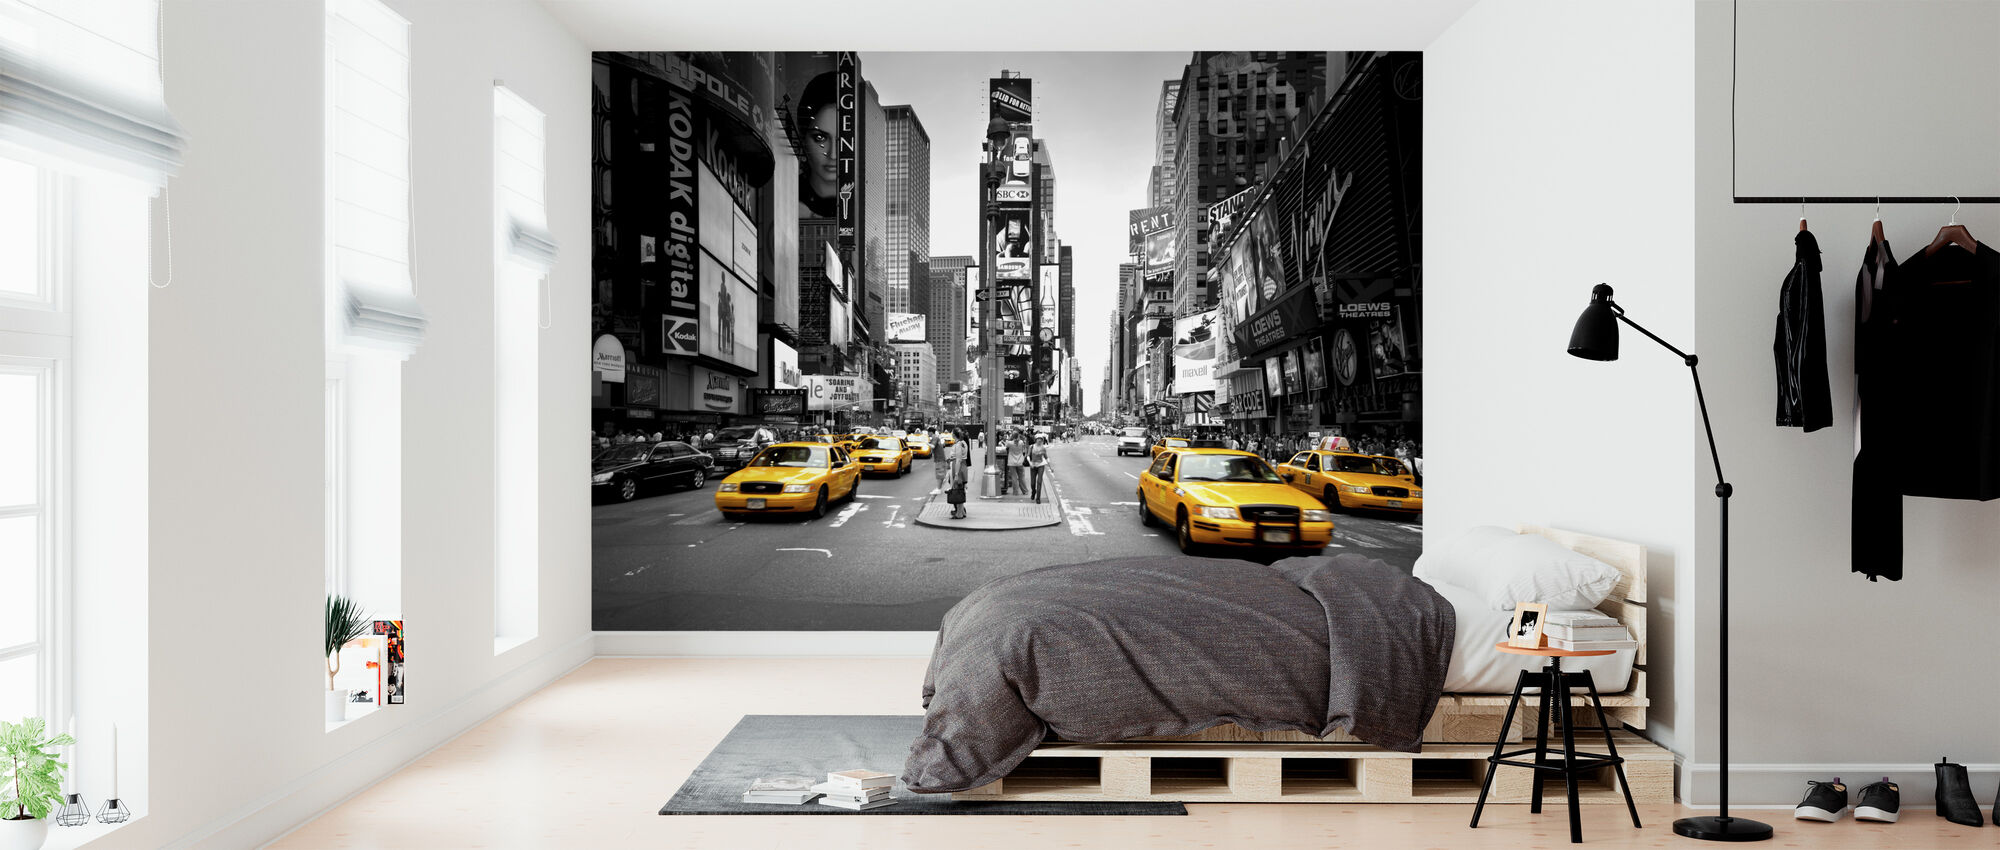 Times Square, New York, USA - Wallpaper - Bedroom